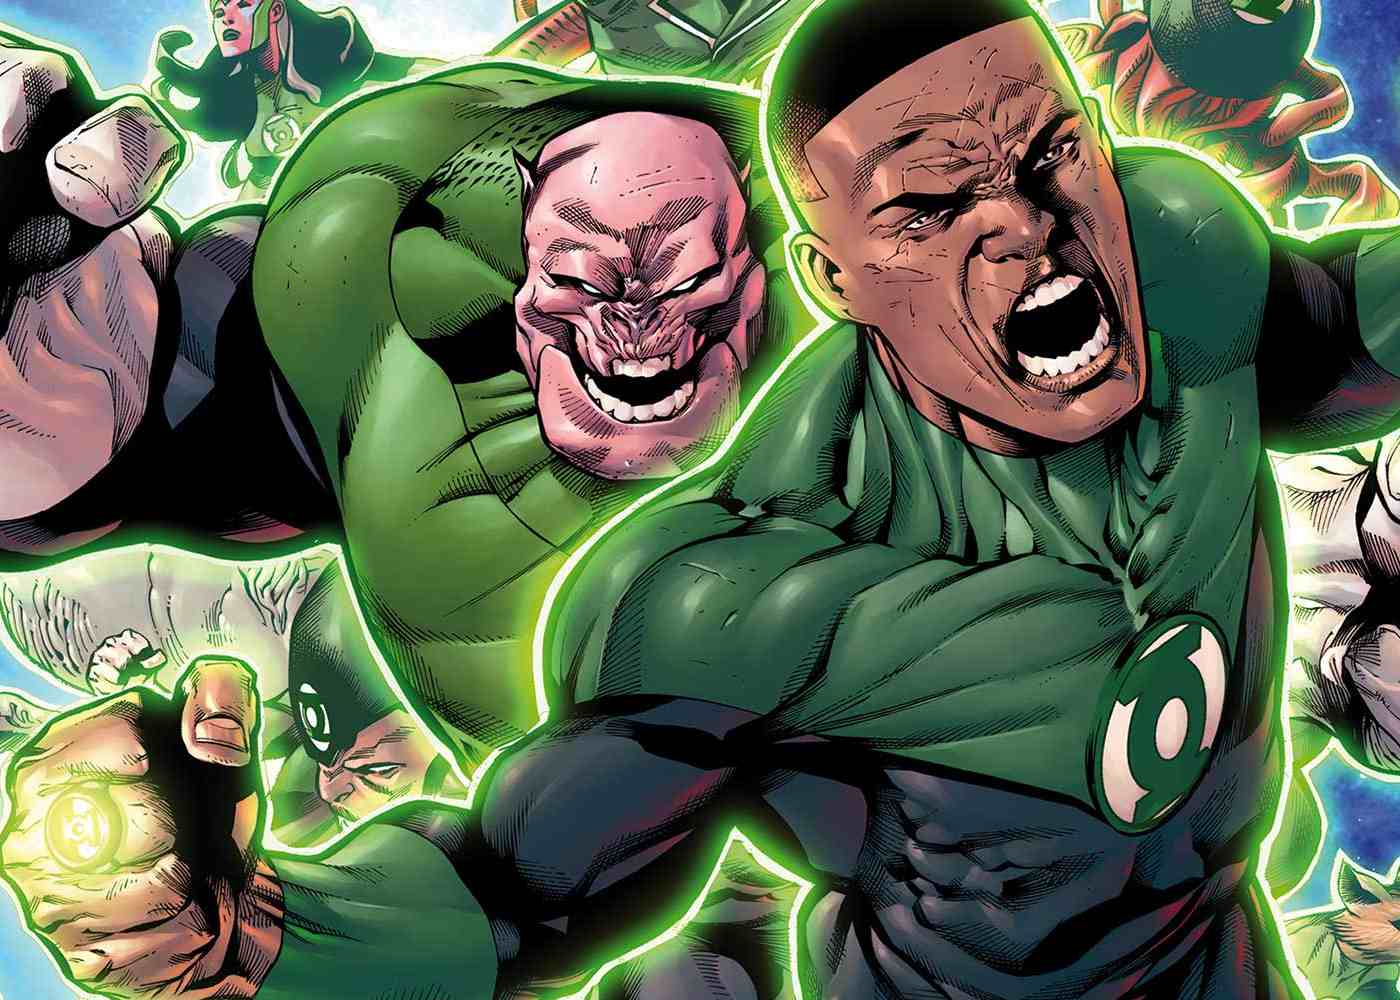 New Details on HBO Max's Green Lantern Series